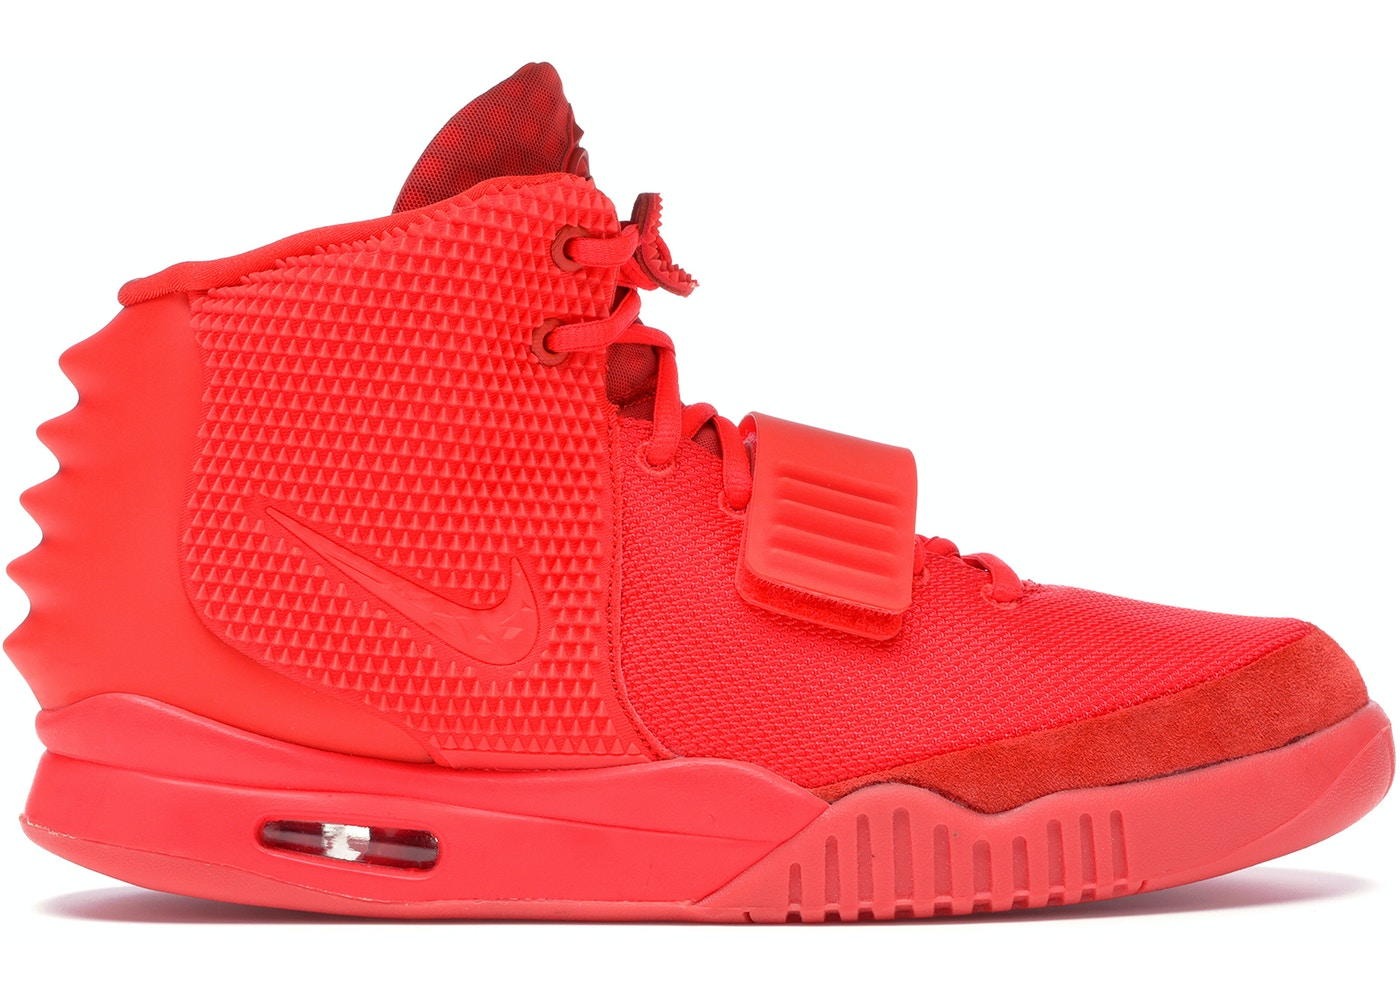 b0ad16dccedaa Air Yeezy 2 Red October - 508214-660